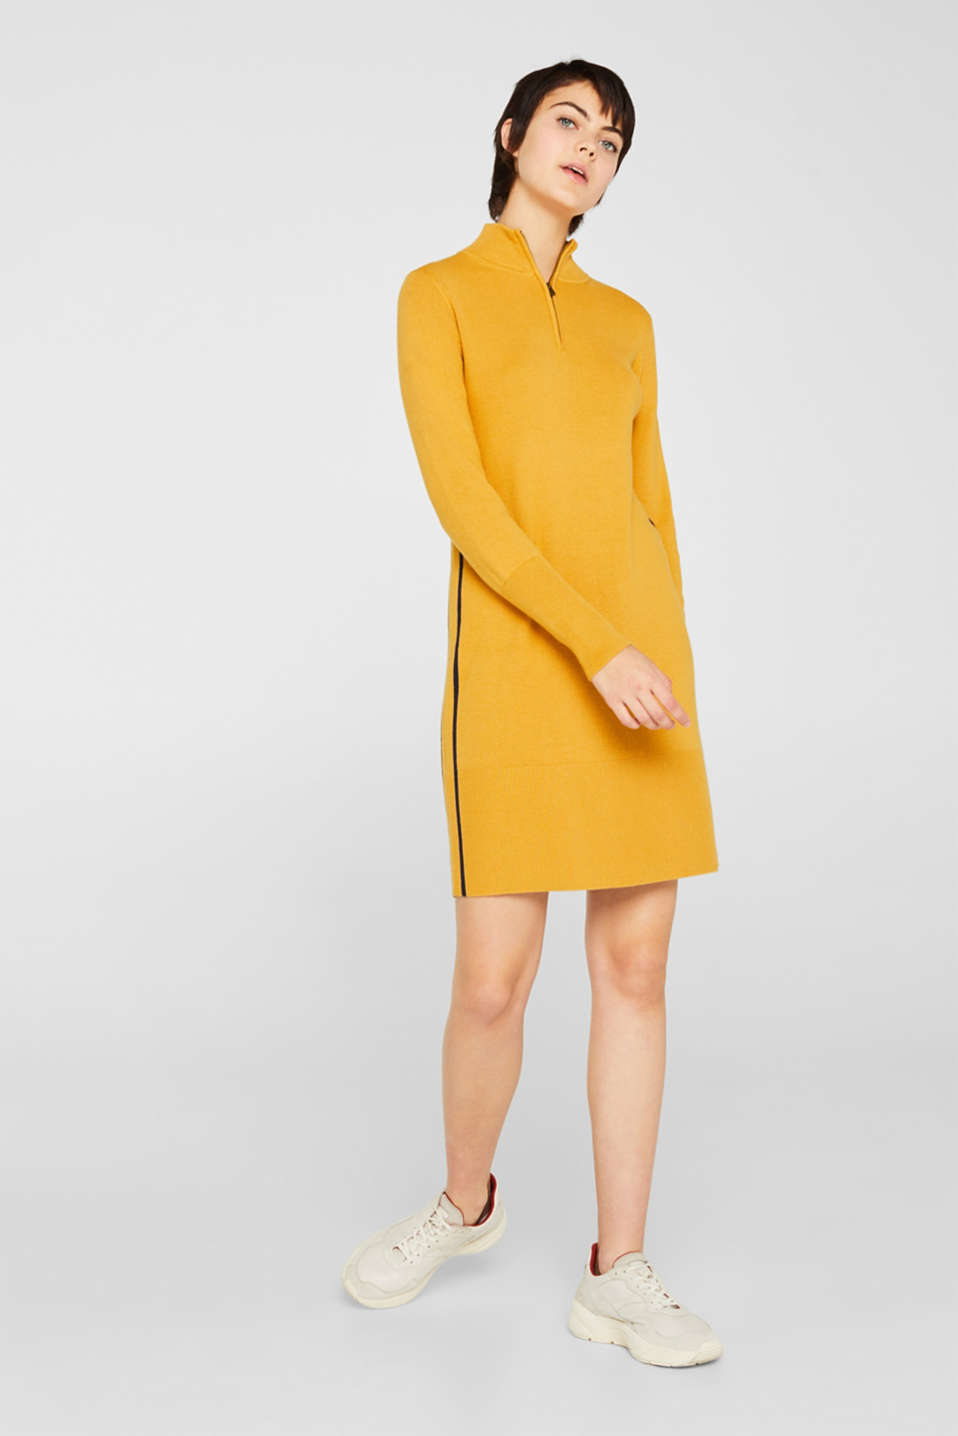 Knit dress with a zip-up band collar, HONEY YELLOW, detail image number 0